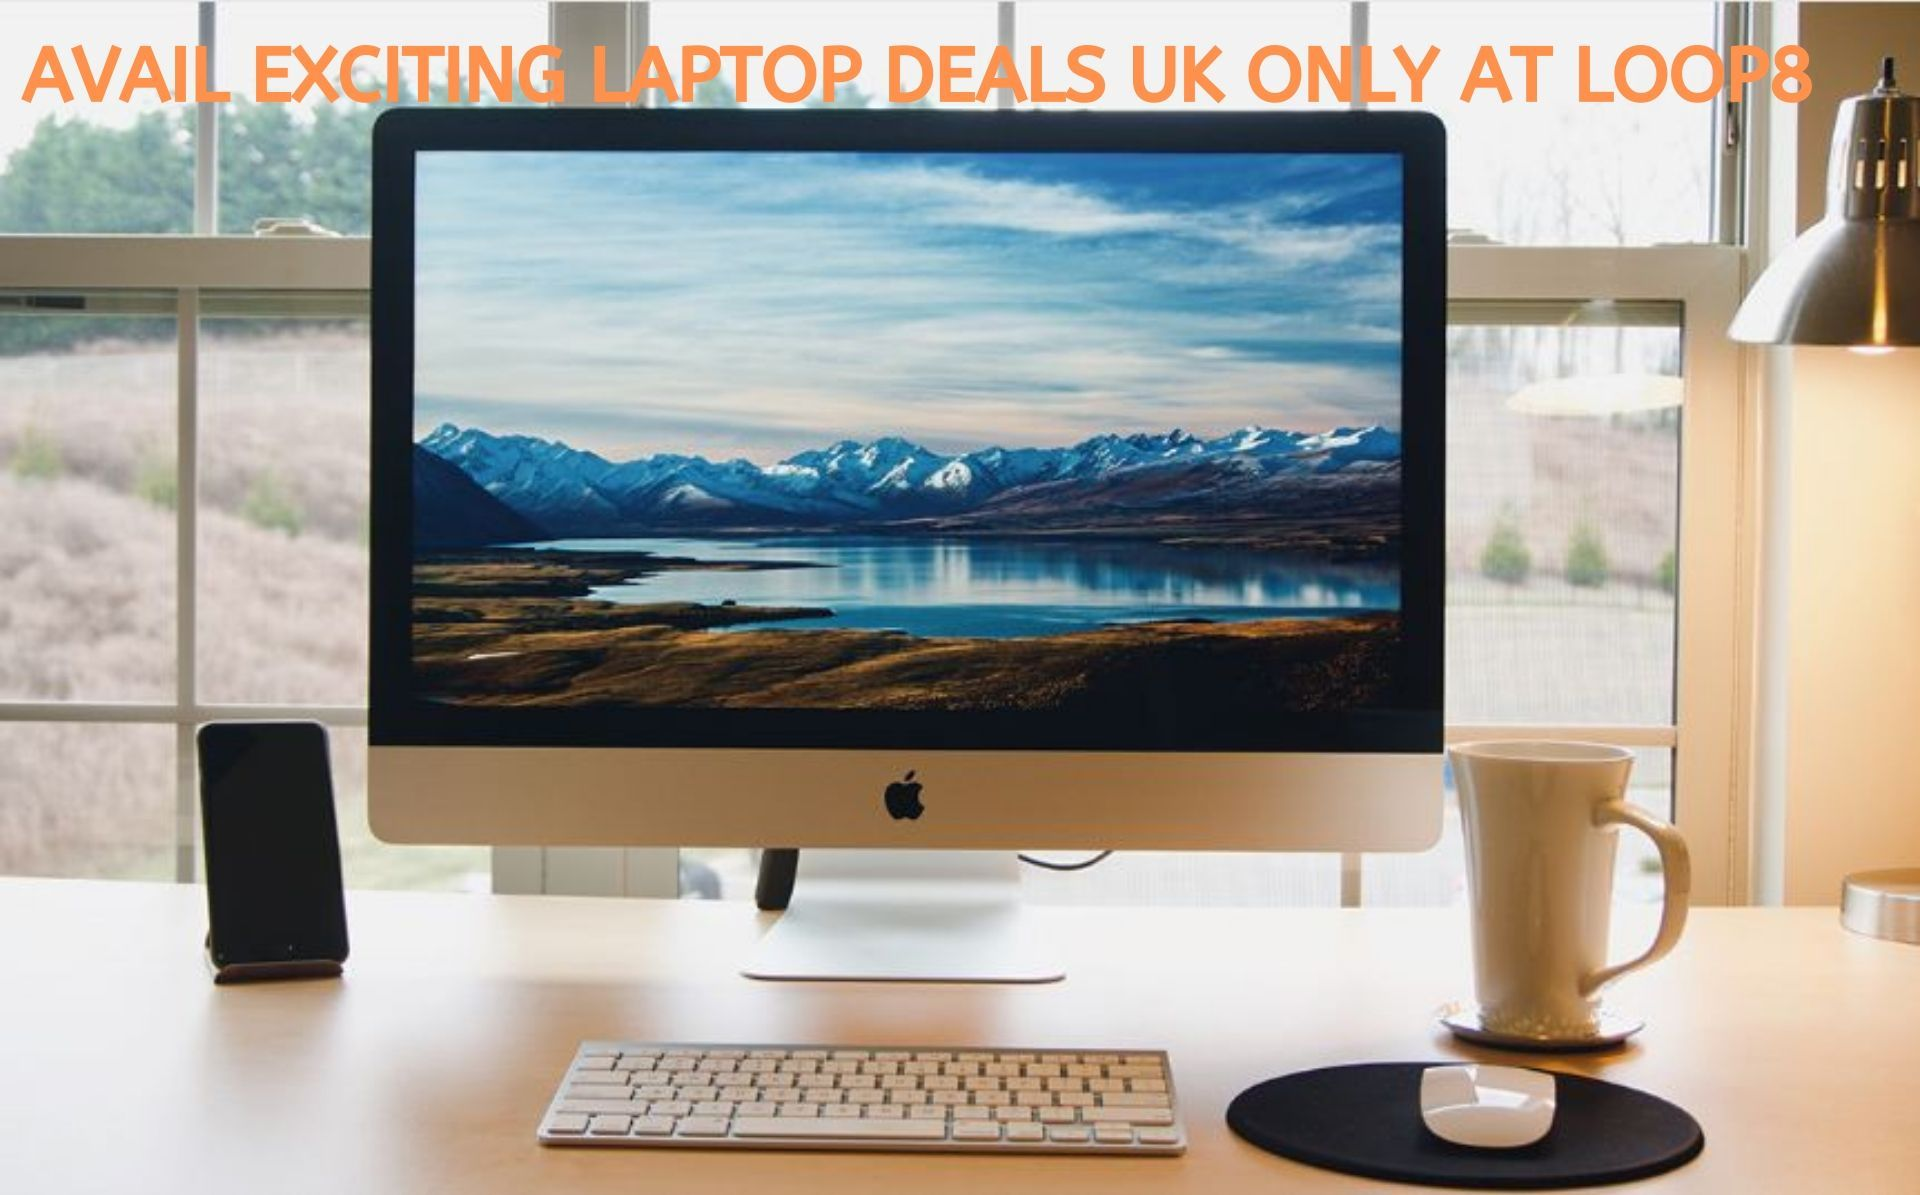 Avail Exciting Laptop Deals Uk Only At Loop8 In 2020 Arm Chip Laptop Deals Photo Editing